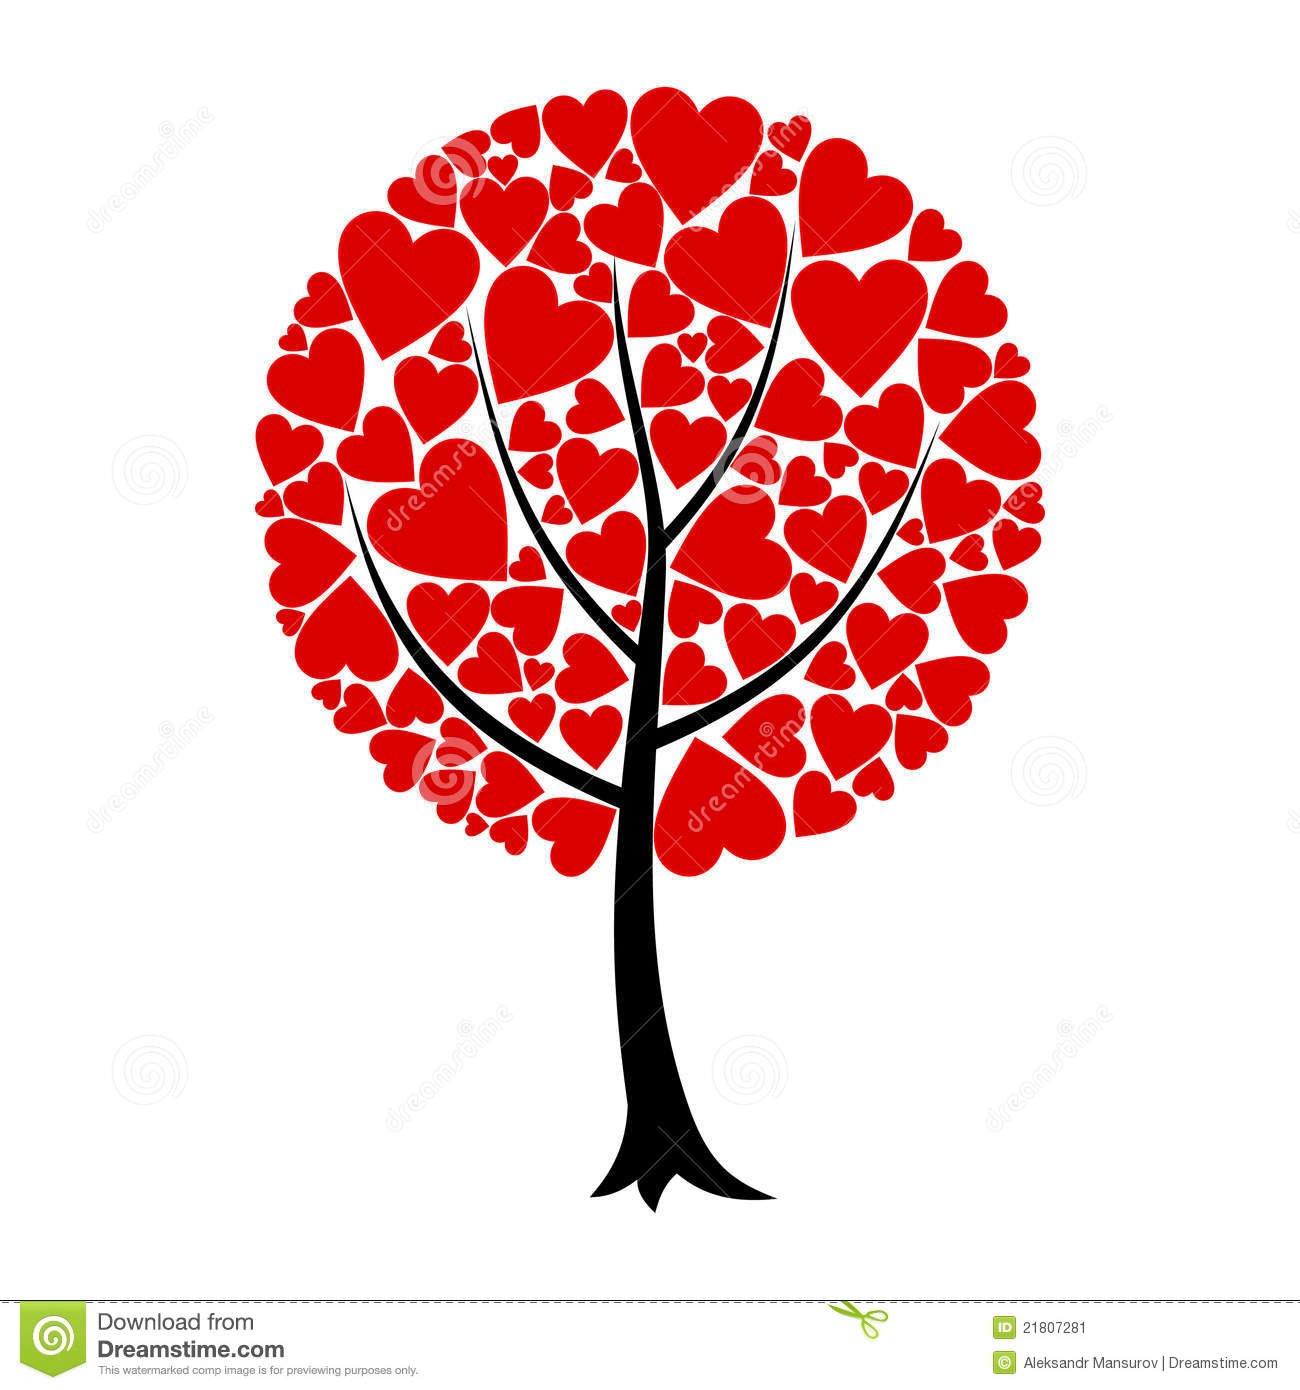 Love tree stock vector. Illustration of design, plant ...